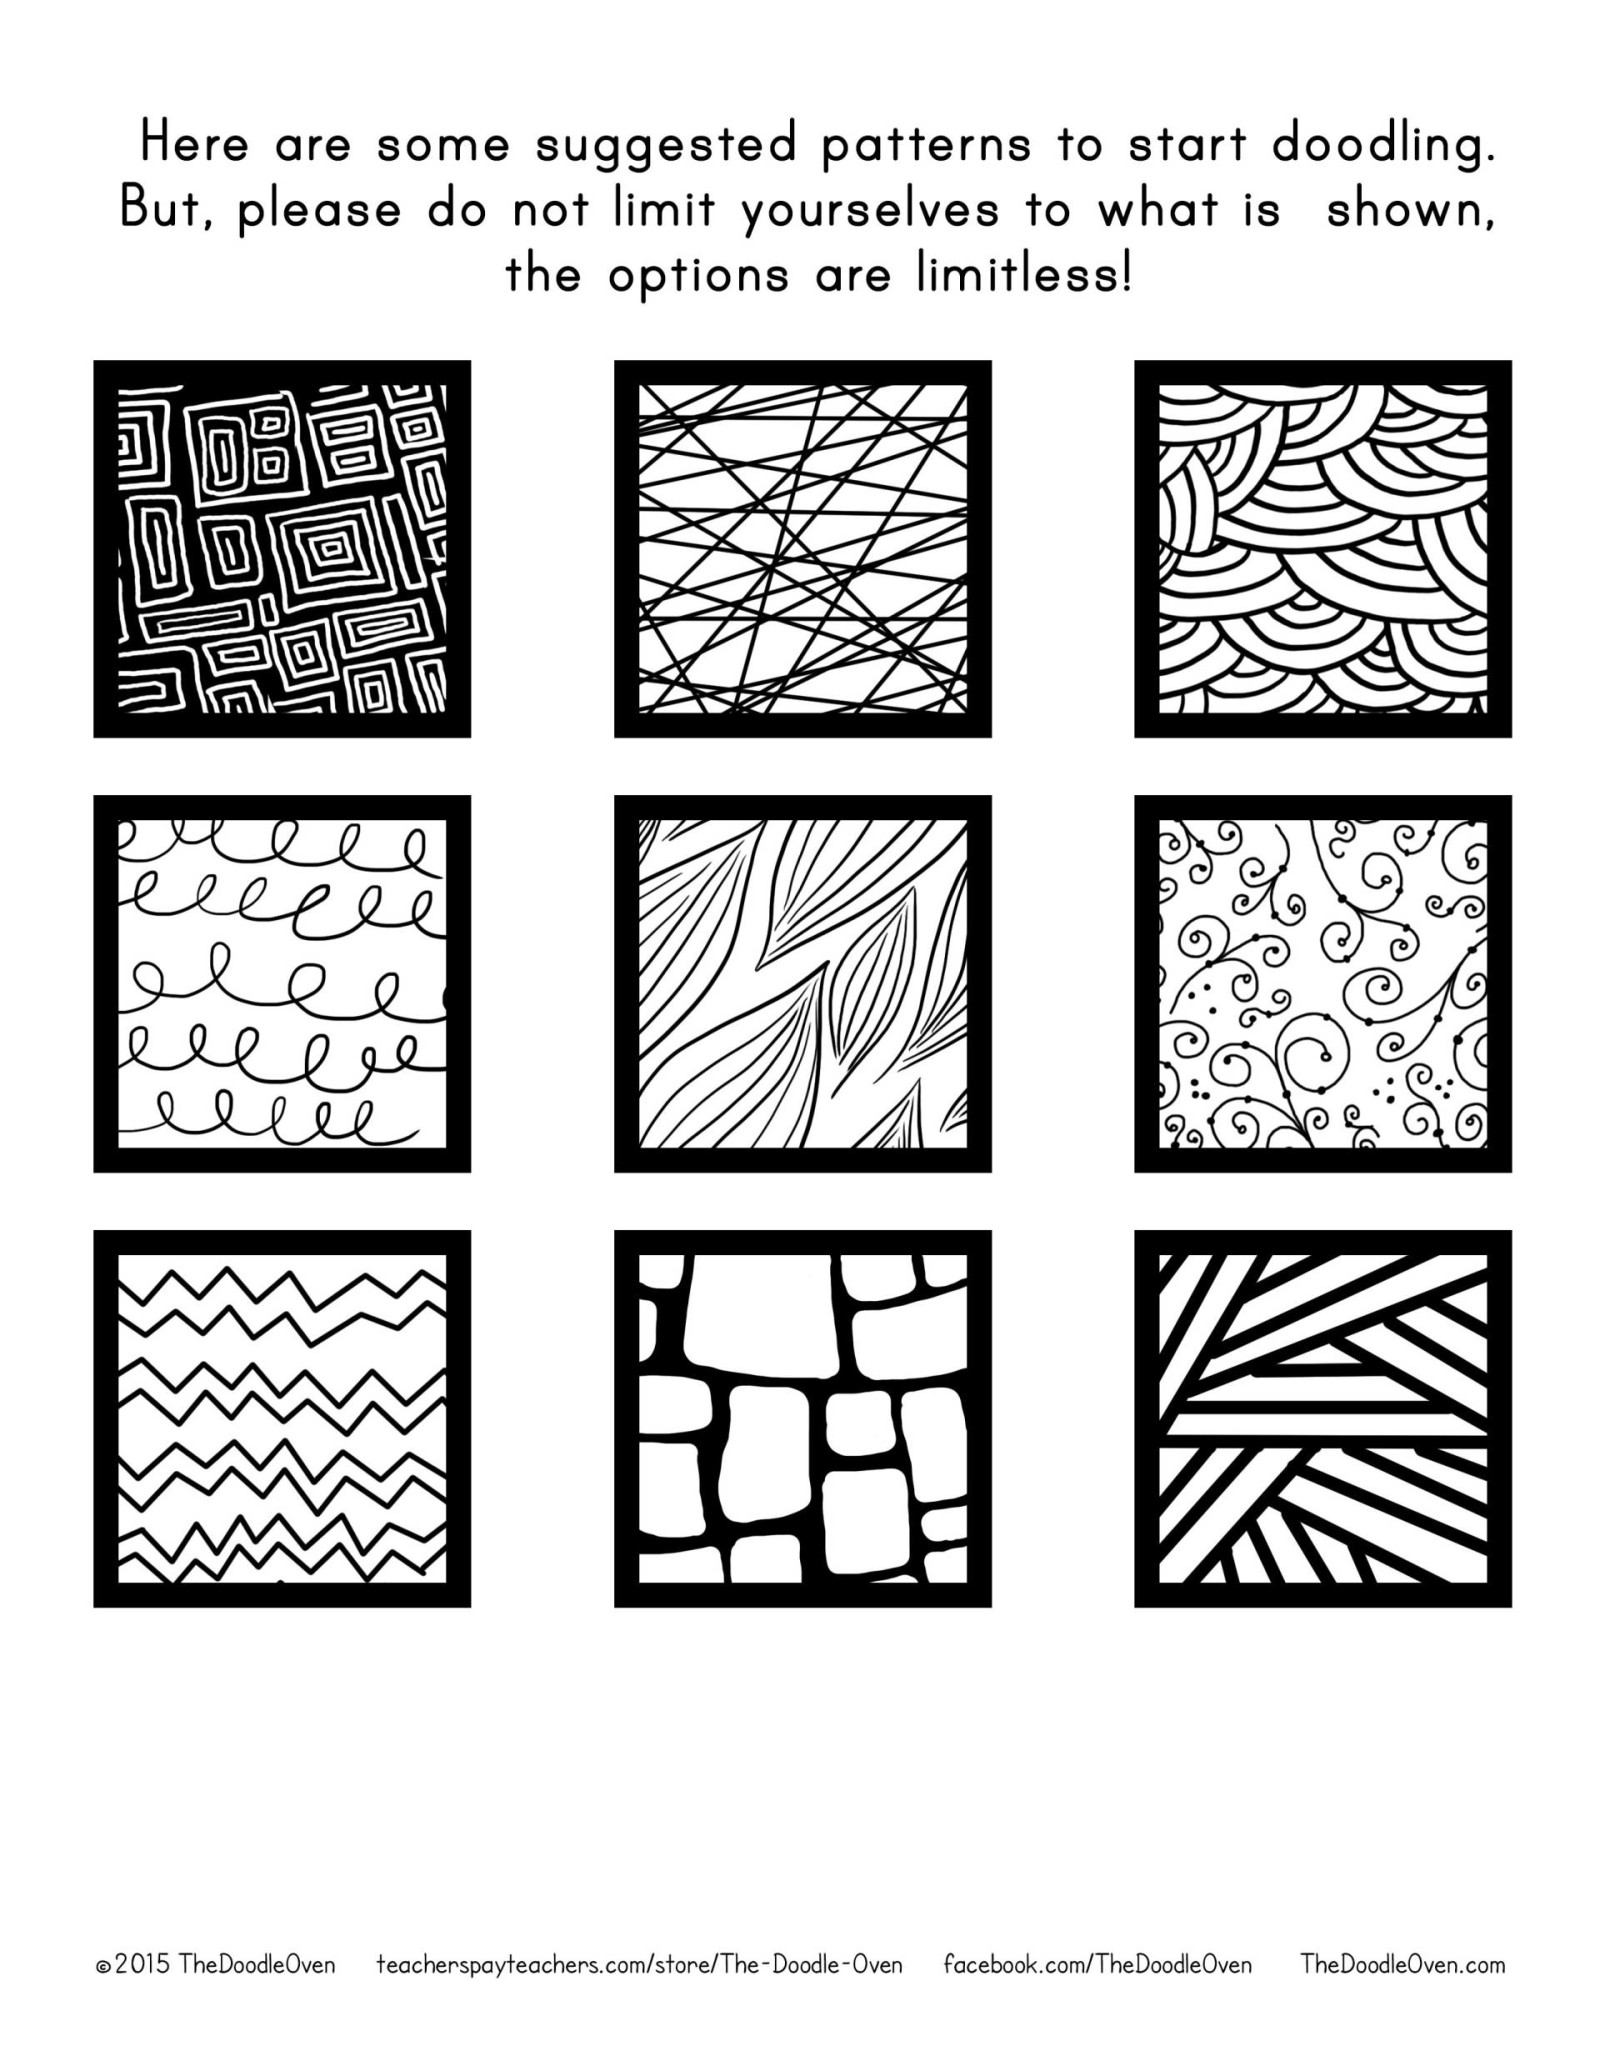 Zentangle Pattern suggestions 2015 The Doodle Oven